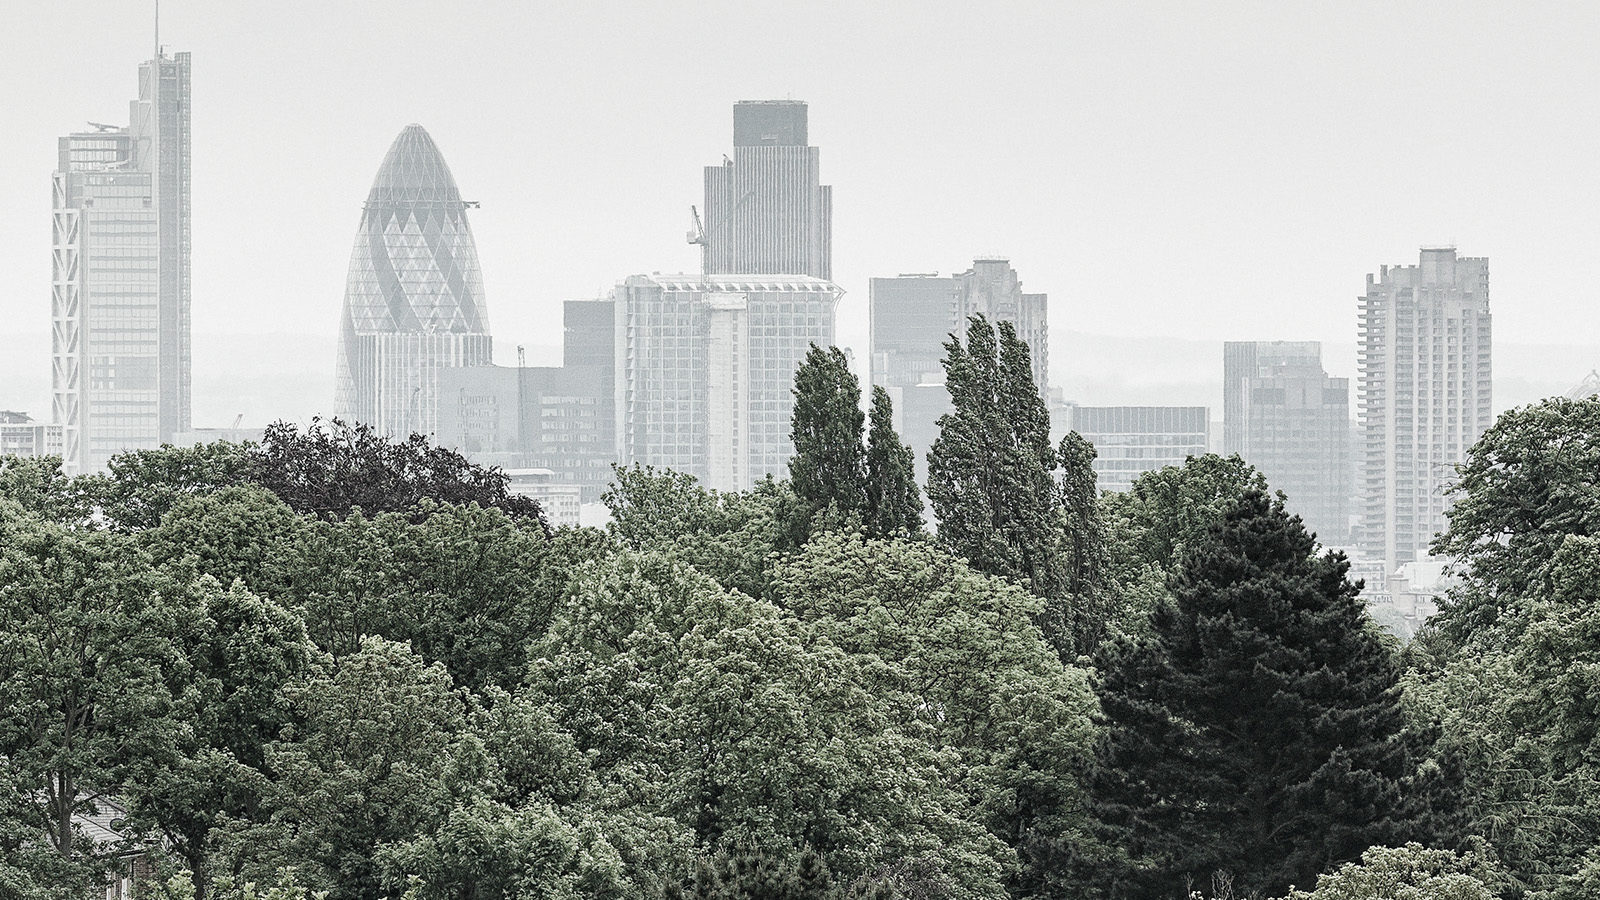 Hampstead Heath View 2010 - Detail of the City of London Skyline. High Res Panoramic Fine Art Print.